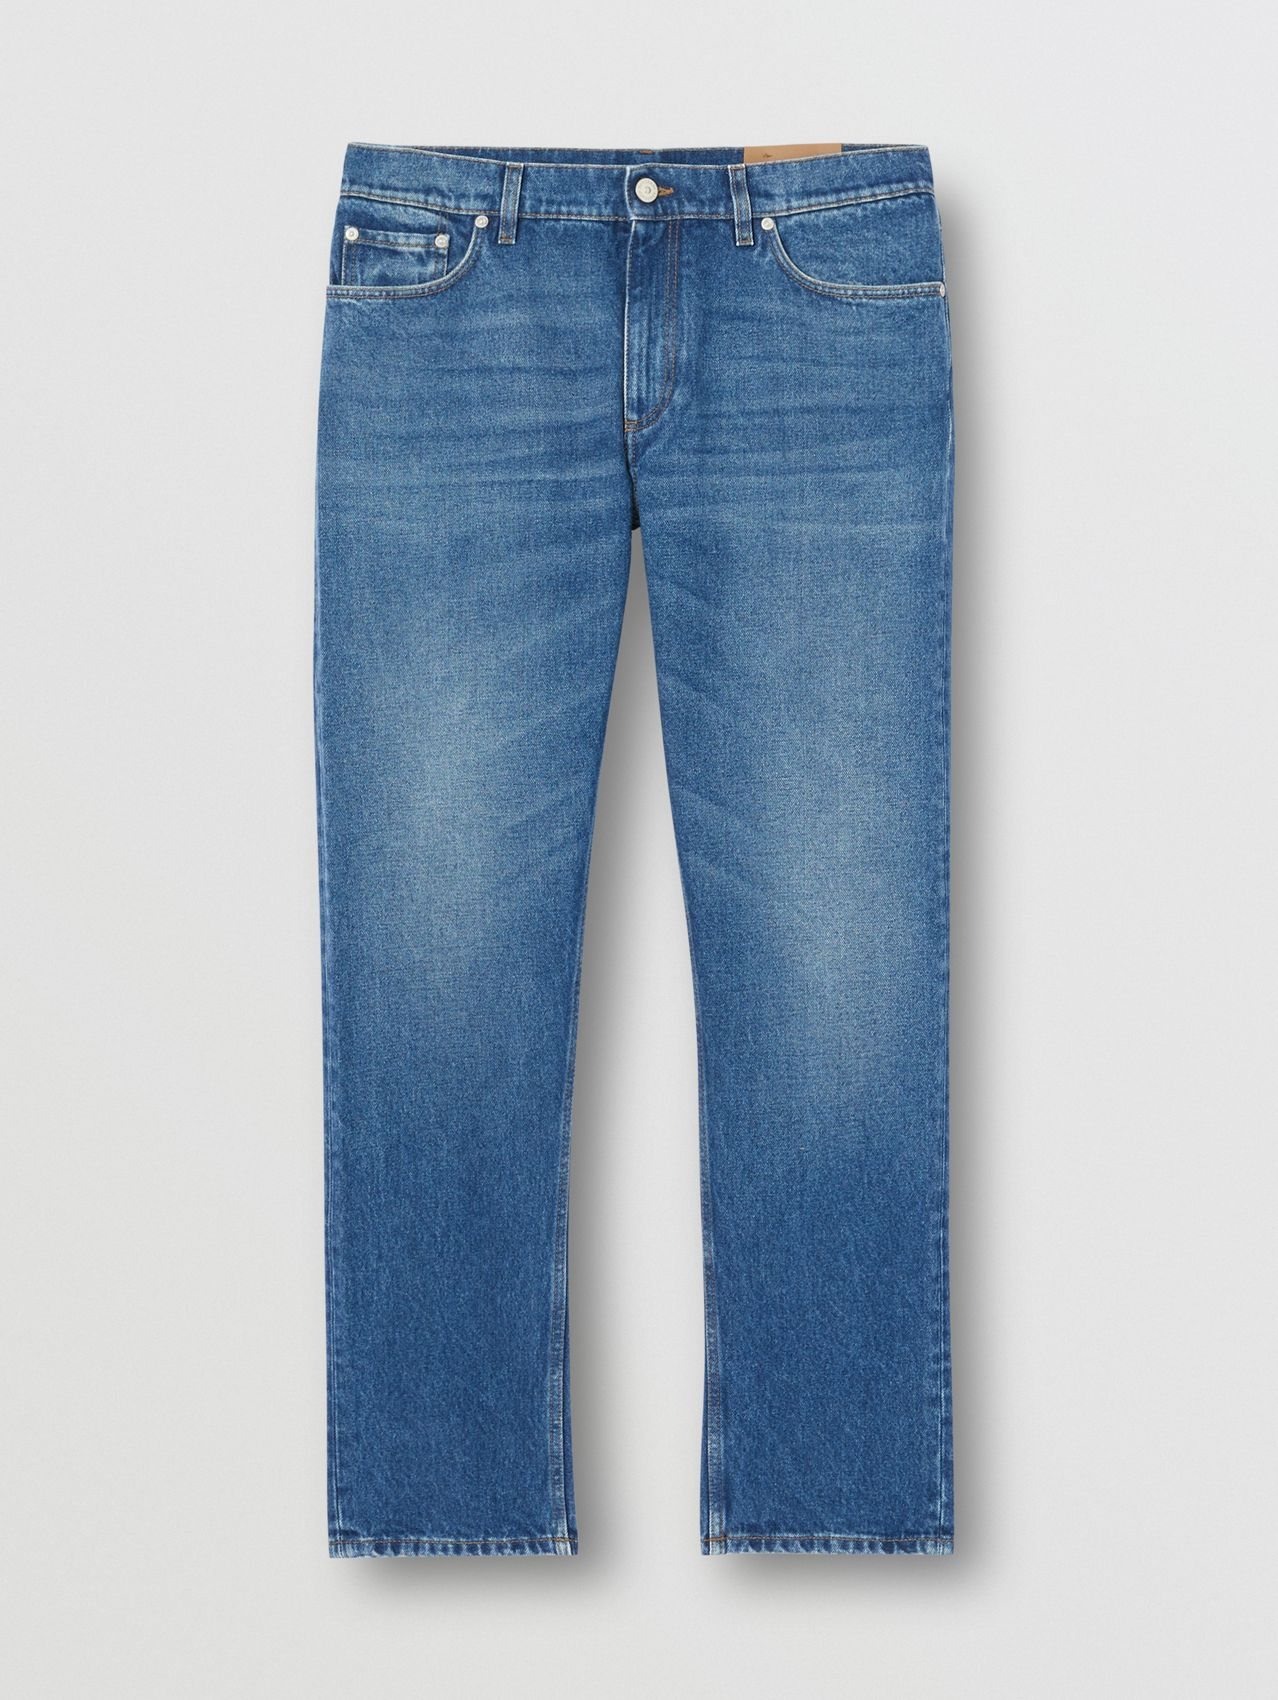 Straight Fit Indigo Jeans in Blue